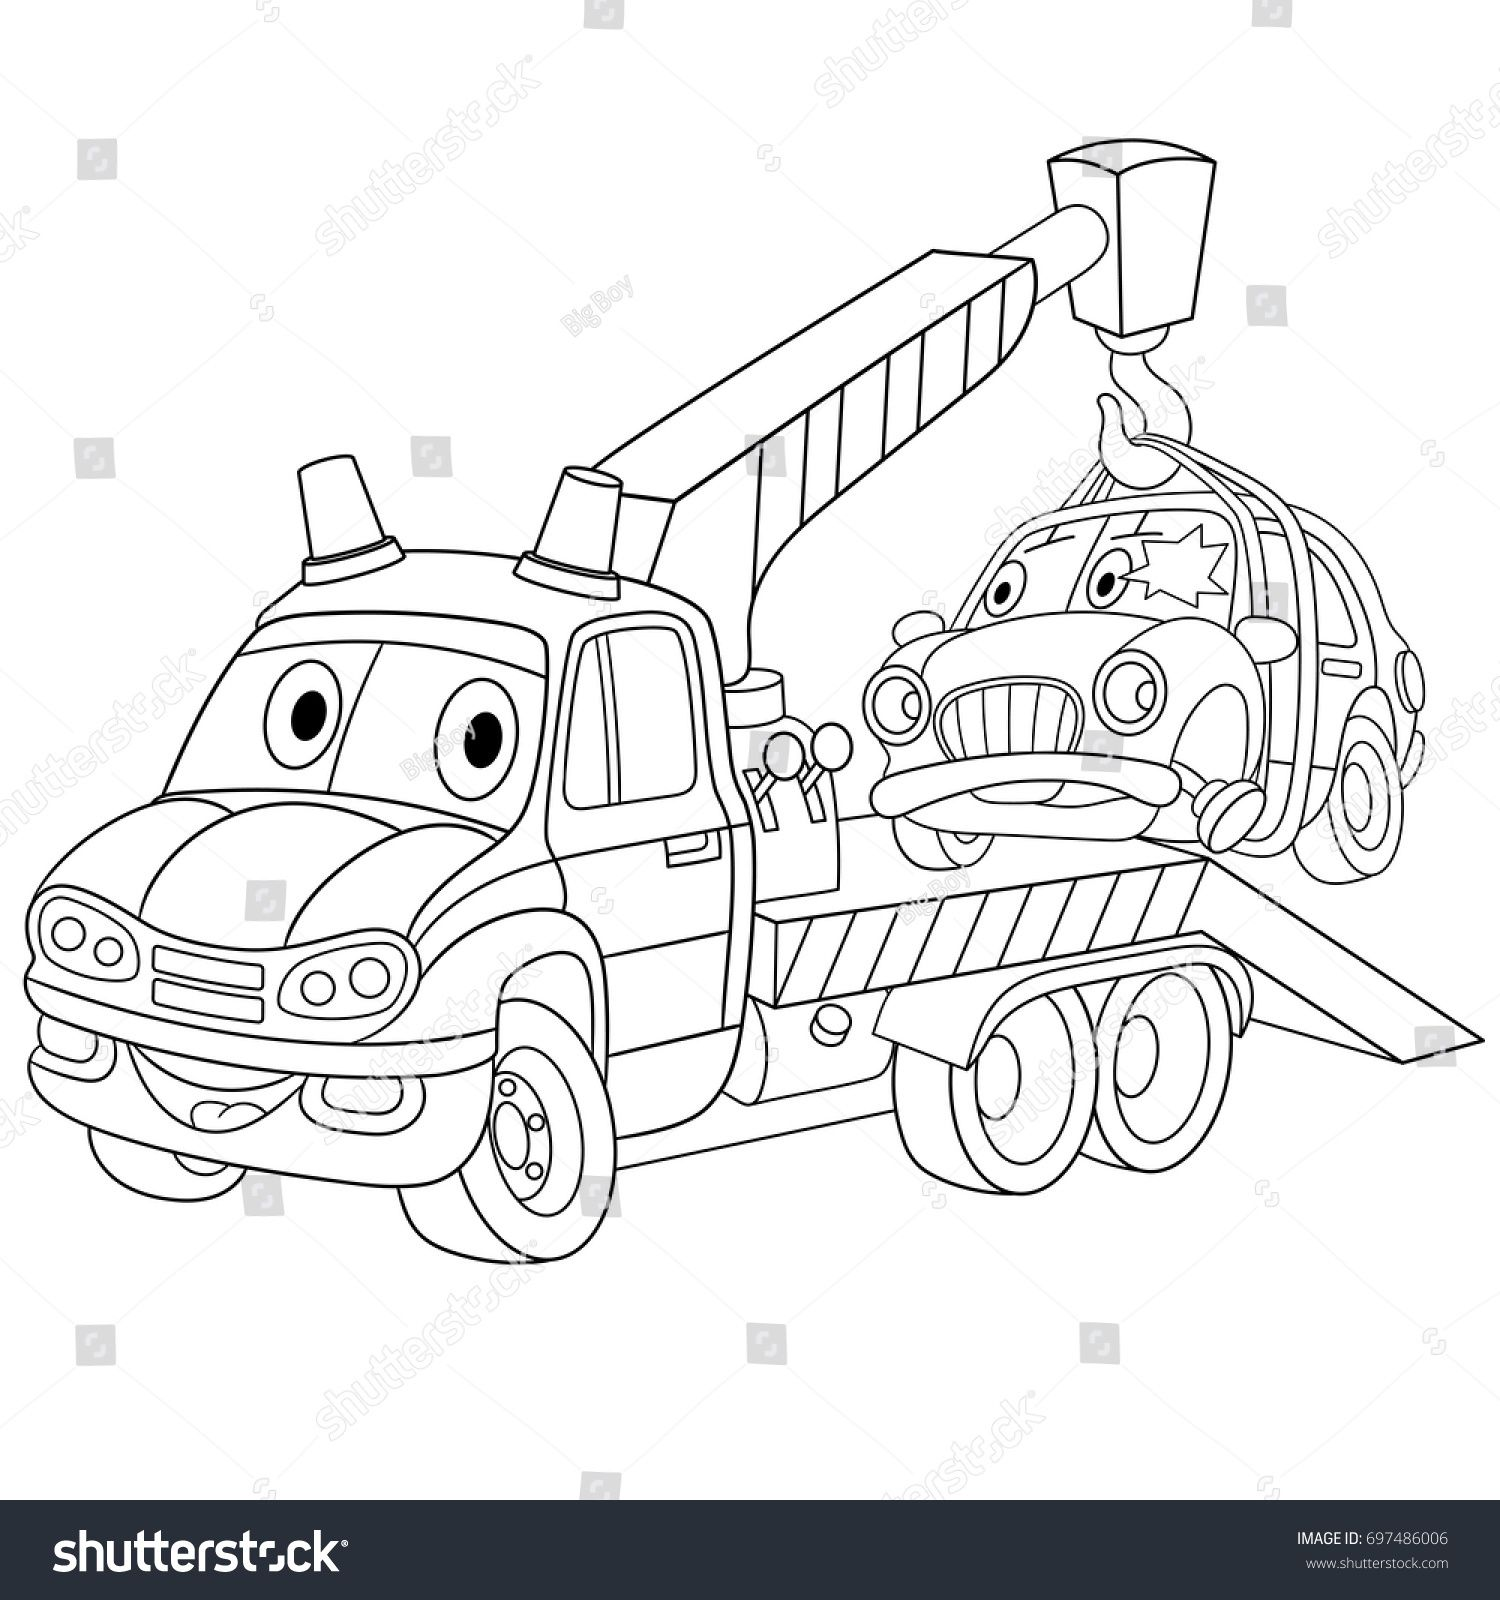 Pin By Stephanie Madore On Dibujos81 Designs Coloring Books Coloring Pages Tow Truck